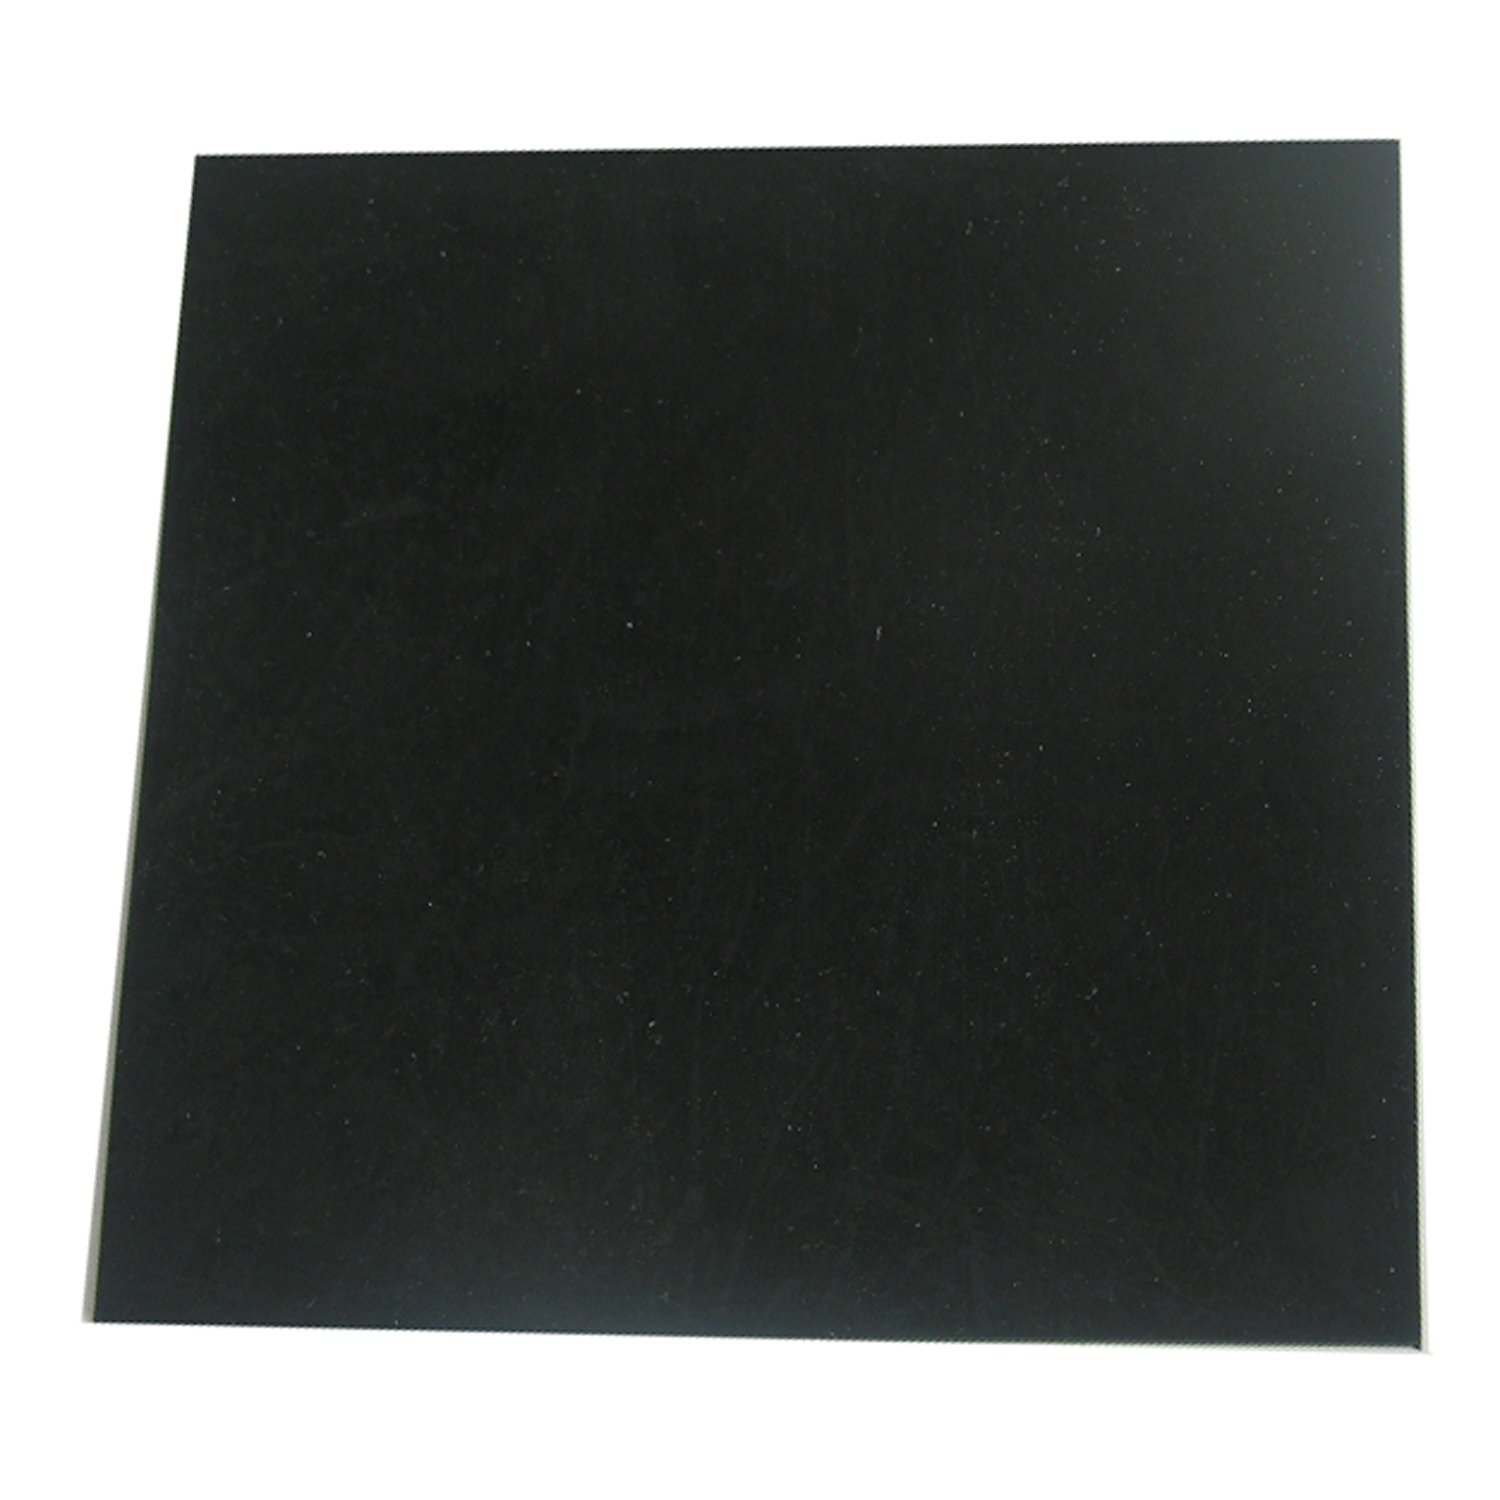 LASCO 02 1048E Rubber Sheet 6 Inches X 6 Inches and 1 16 Inch Thick